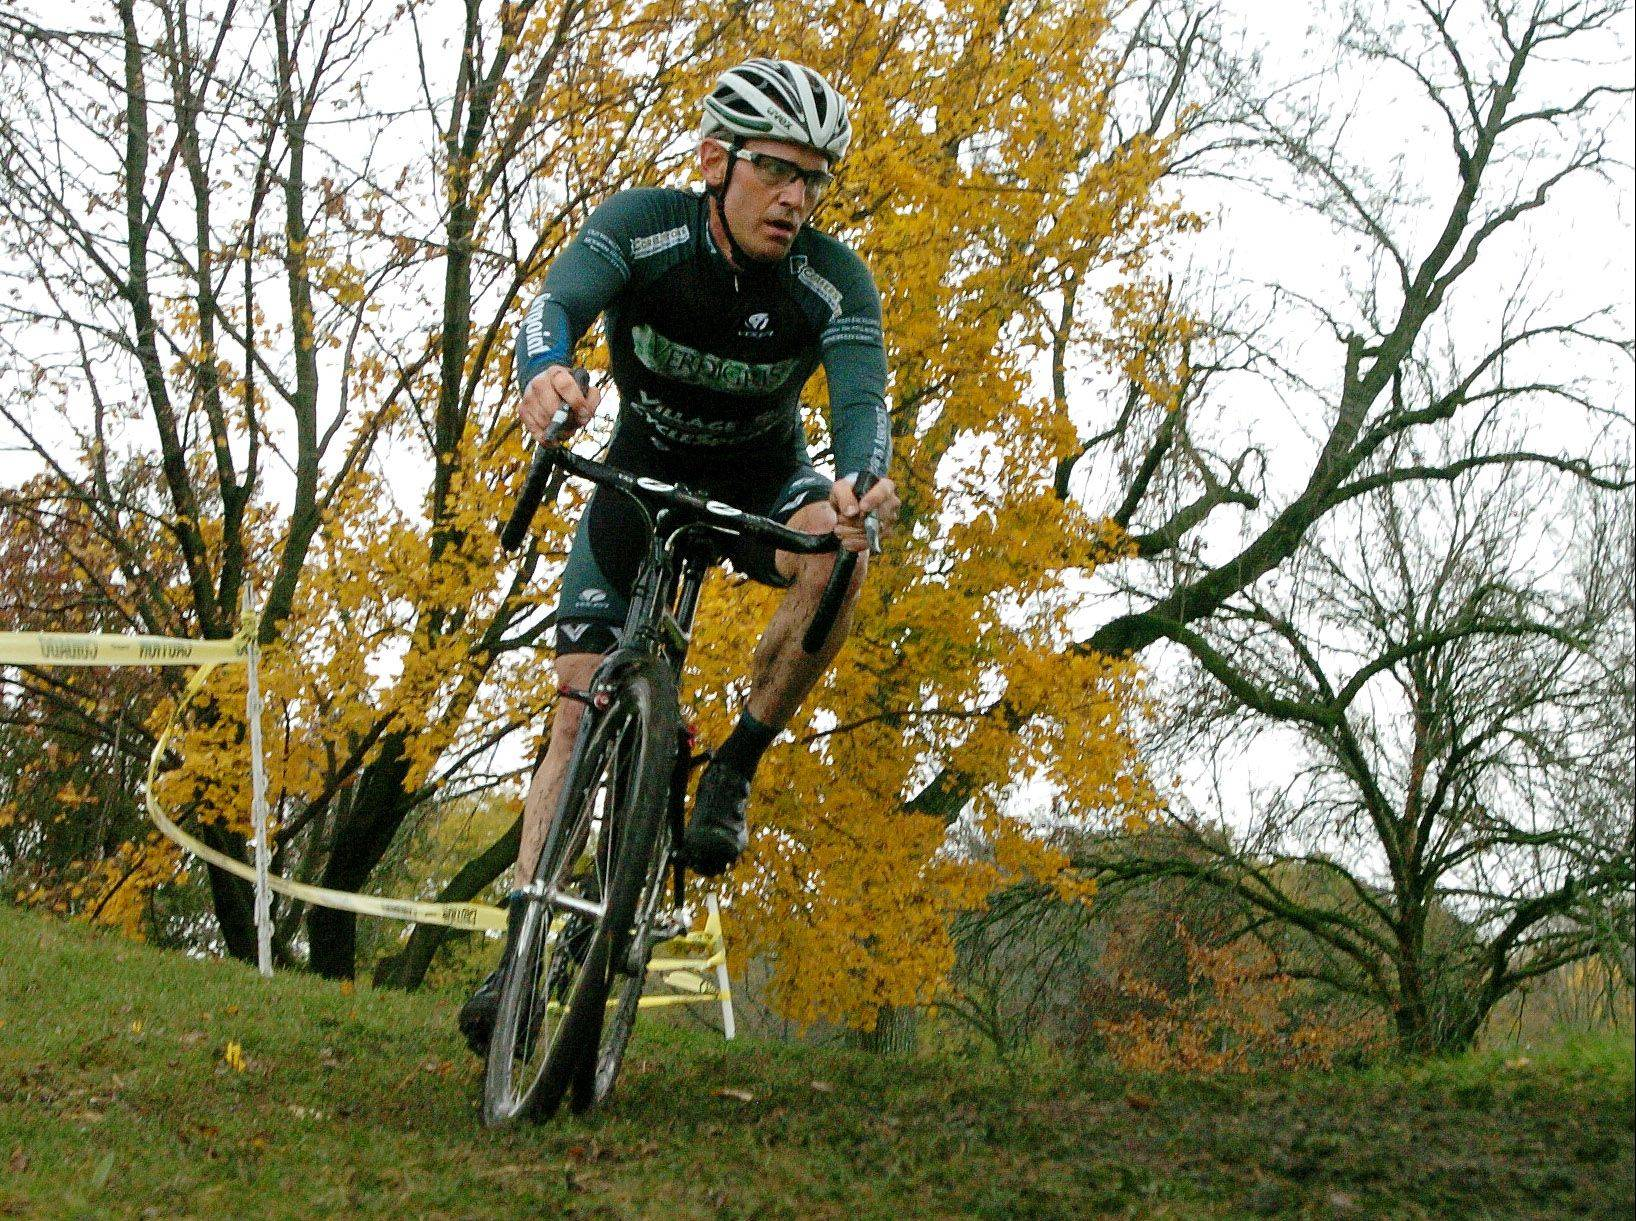 Tim Boundy of Deer Park, rides toward the finish line in the Carpentersville Cyclocross bicycle event Sunday at Oktoberfest. Boundy finished first in the age 30-plus group.